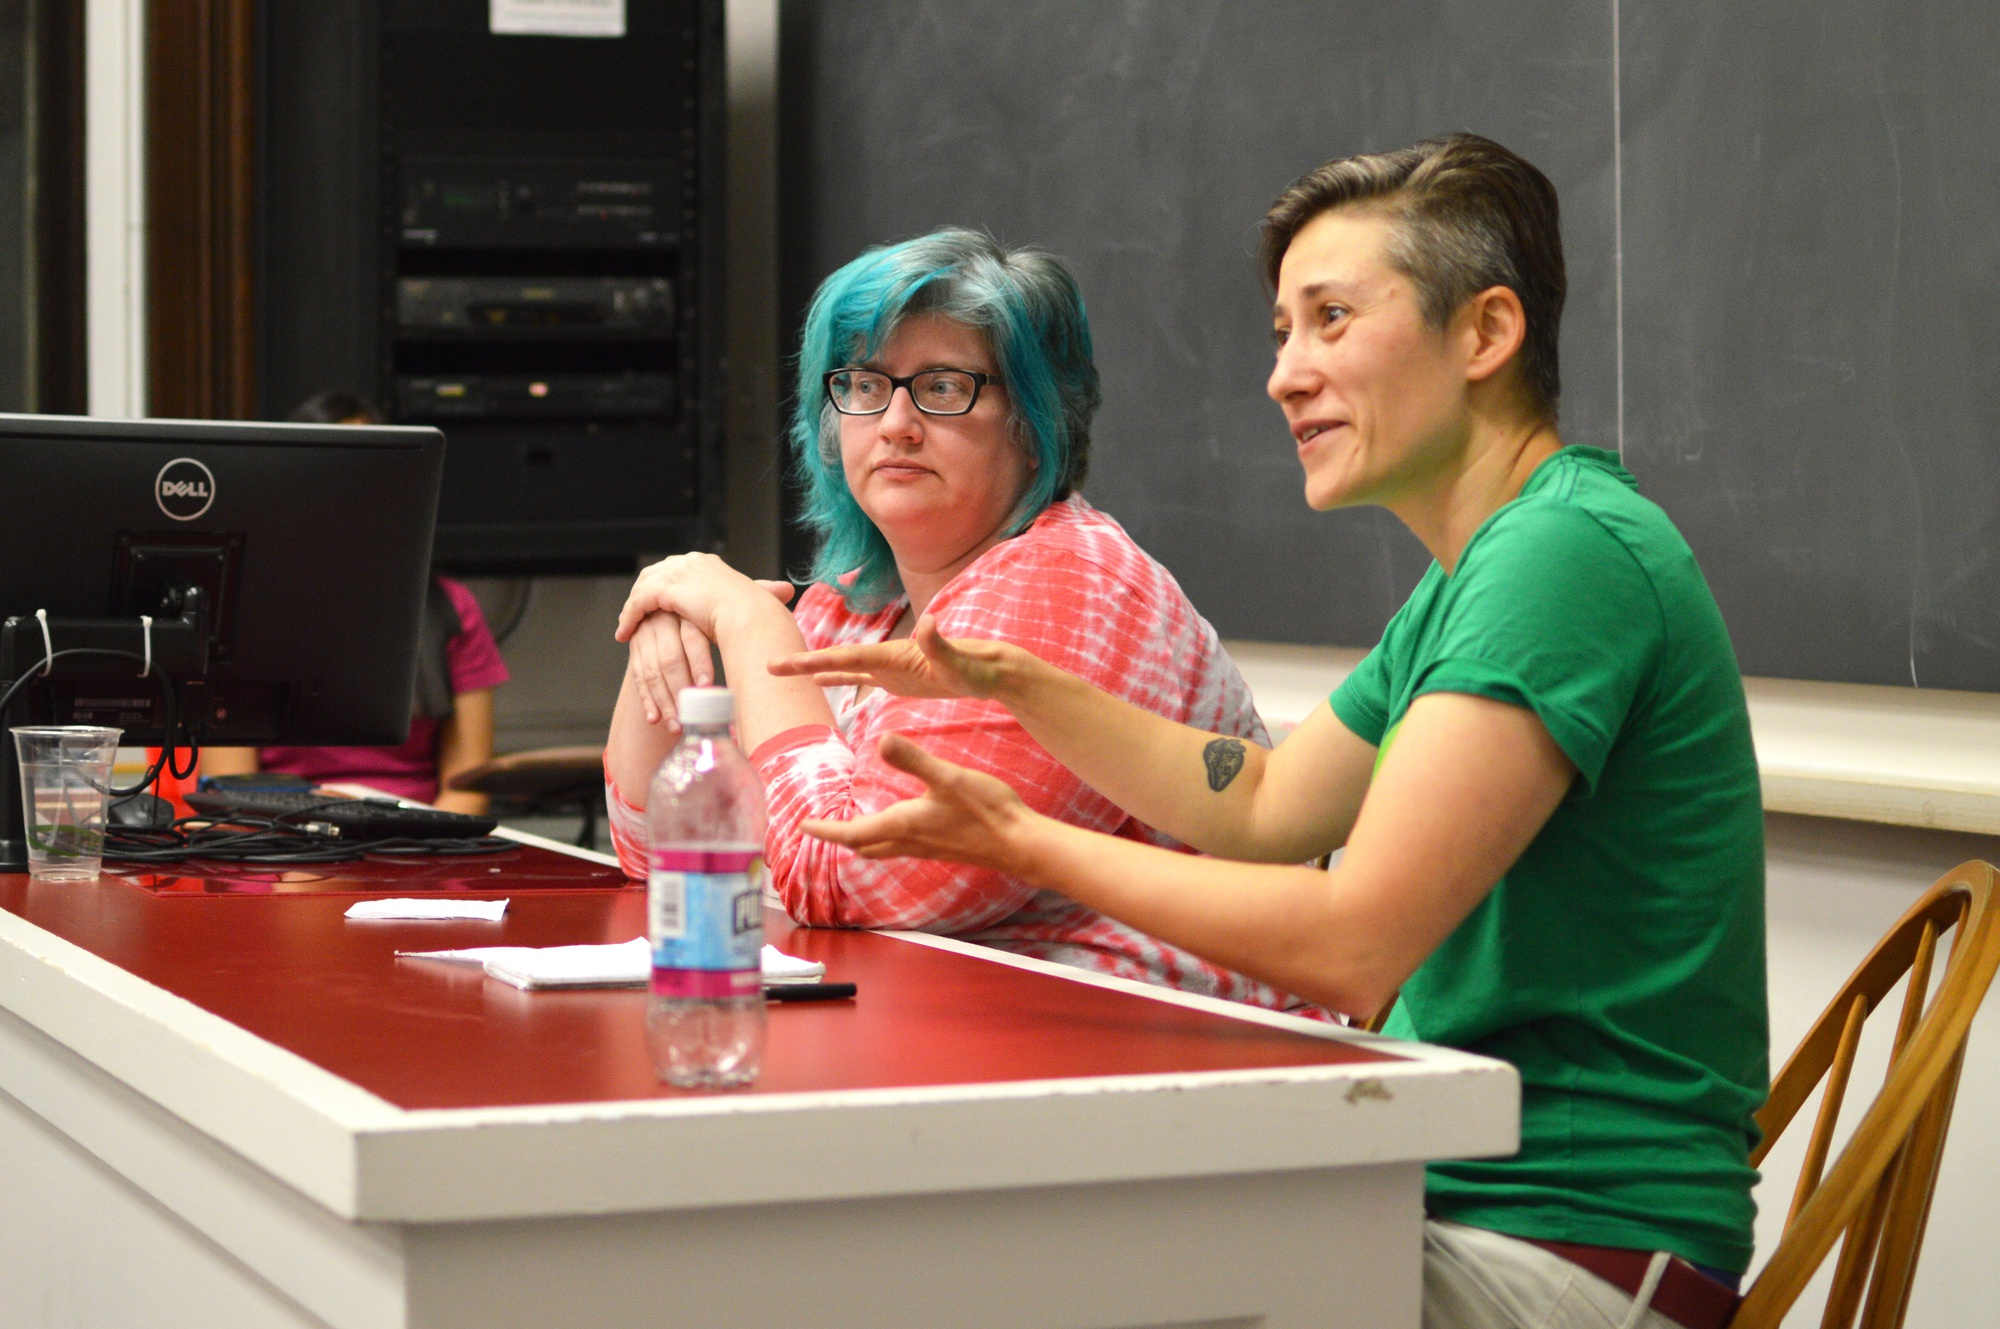 Cathy O'Neil, left, and Moon Duchin '97, right, discuss gender discrimination in academia on Monday  evening. Gender Inclusivity in Mathematics, a new student organization promoting inclusivity for minorities and females, hosted the event.